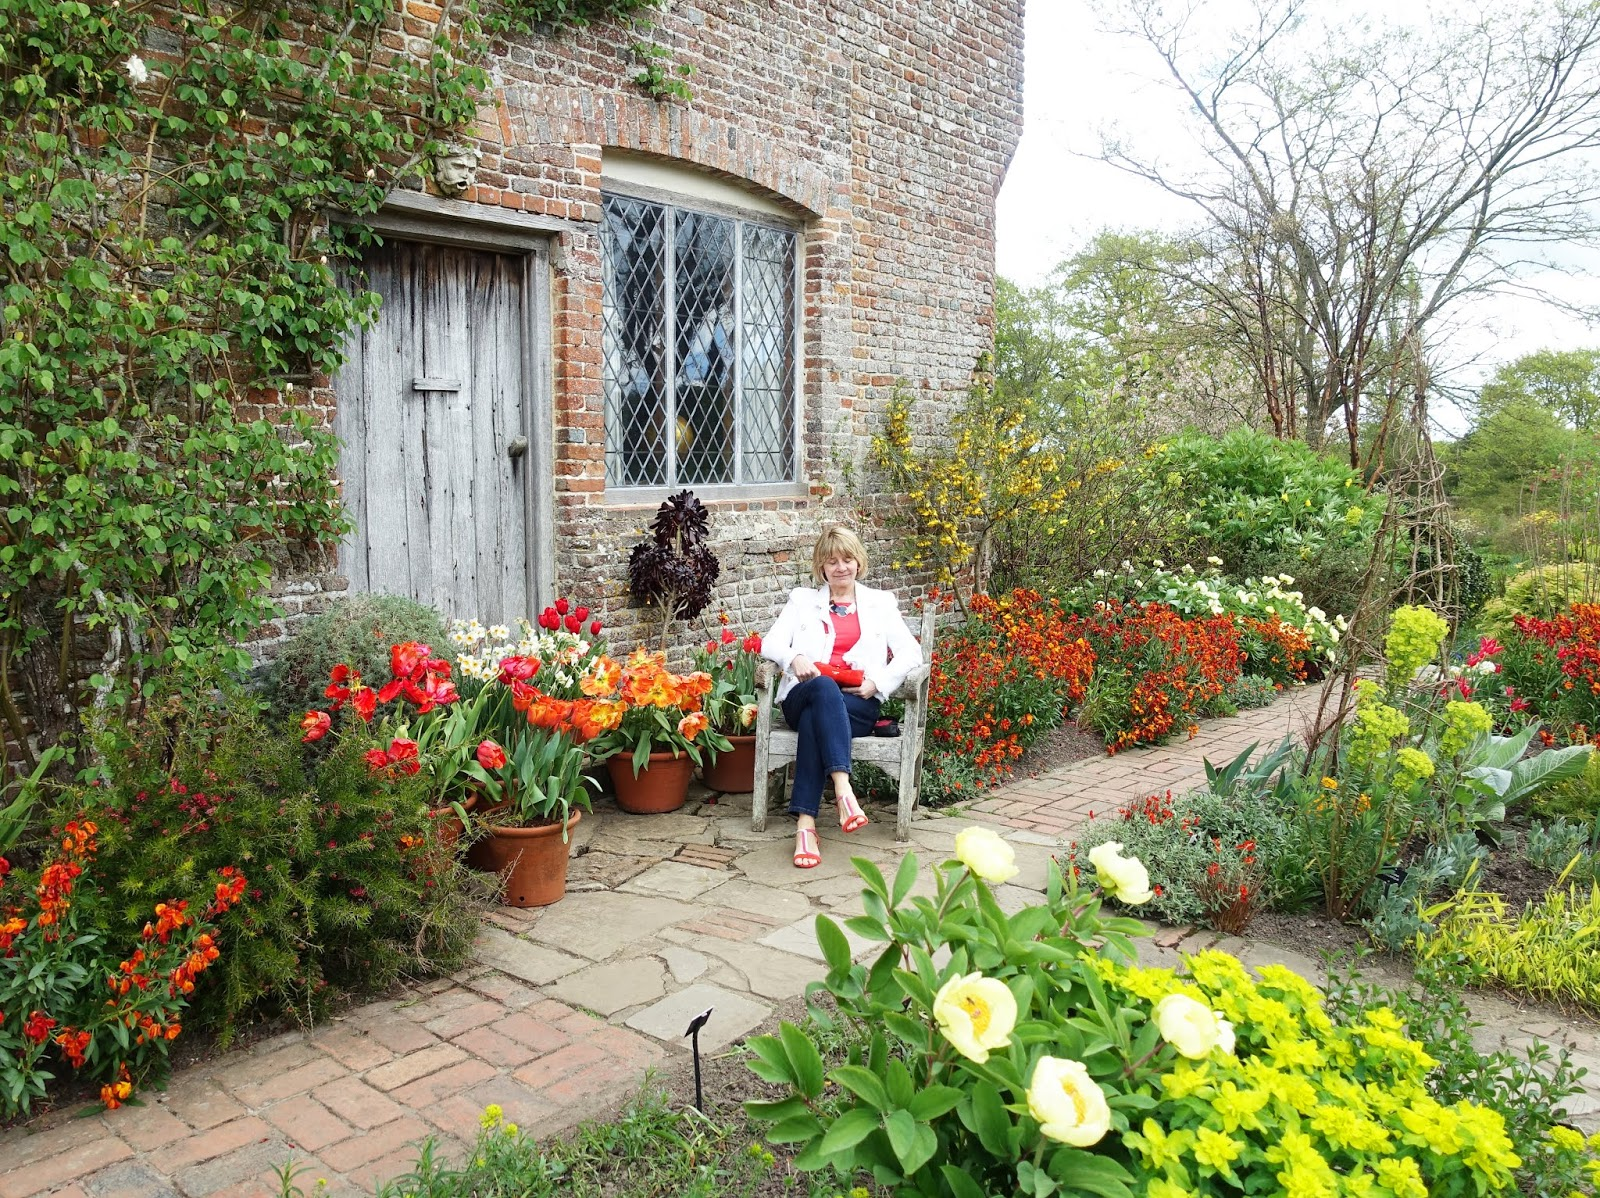 Seated among the fragrant wallflowers at Sissinghurst Castle Garden